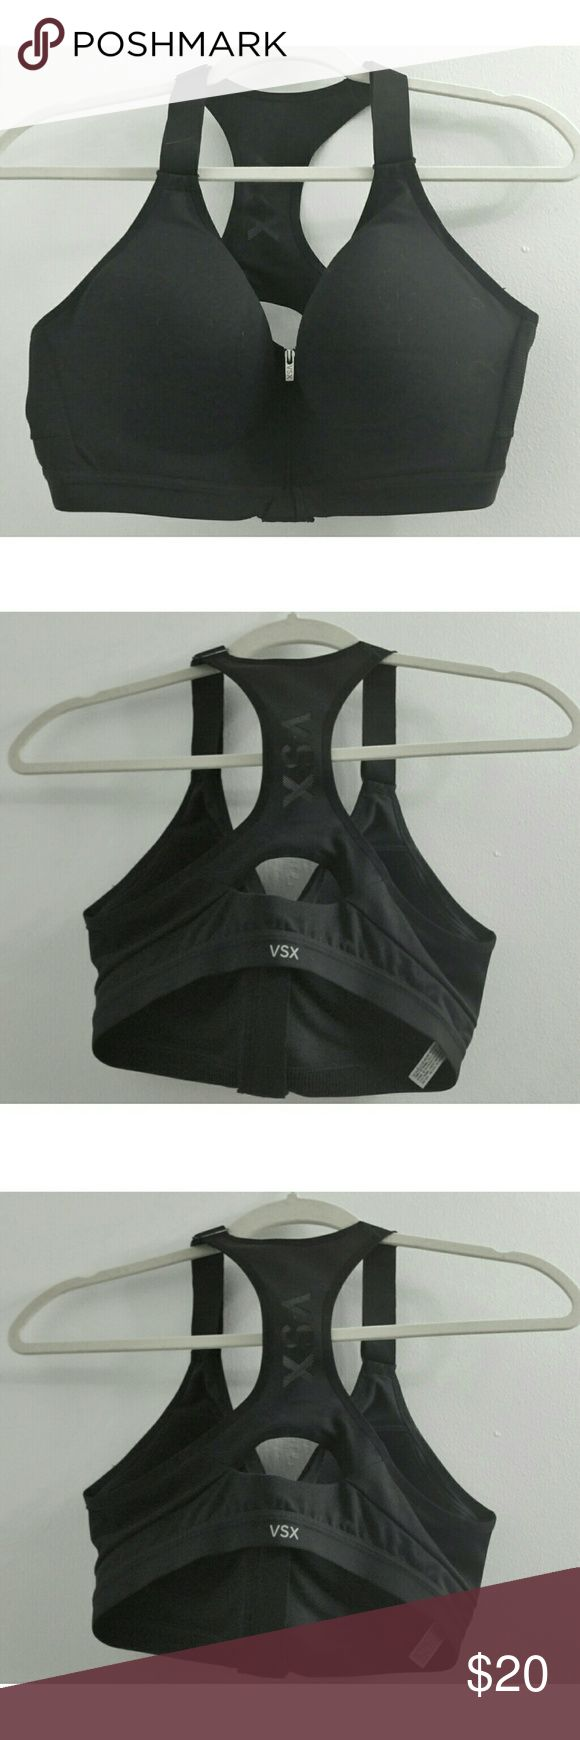 Victoria's Secret VSX Racerback Padded Bra This is a recerback sports bra from Victoria's Secret active VSX line size 36c. In NWOT condition. Very high quality with thick, adjustable straps and padded cups. There is a zipper in the front that is lined with a foamy material for great fit and comfort. Victoria's Secret Intimates & Sleepwear Bras